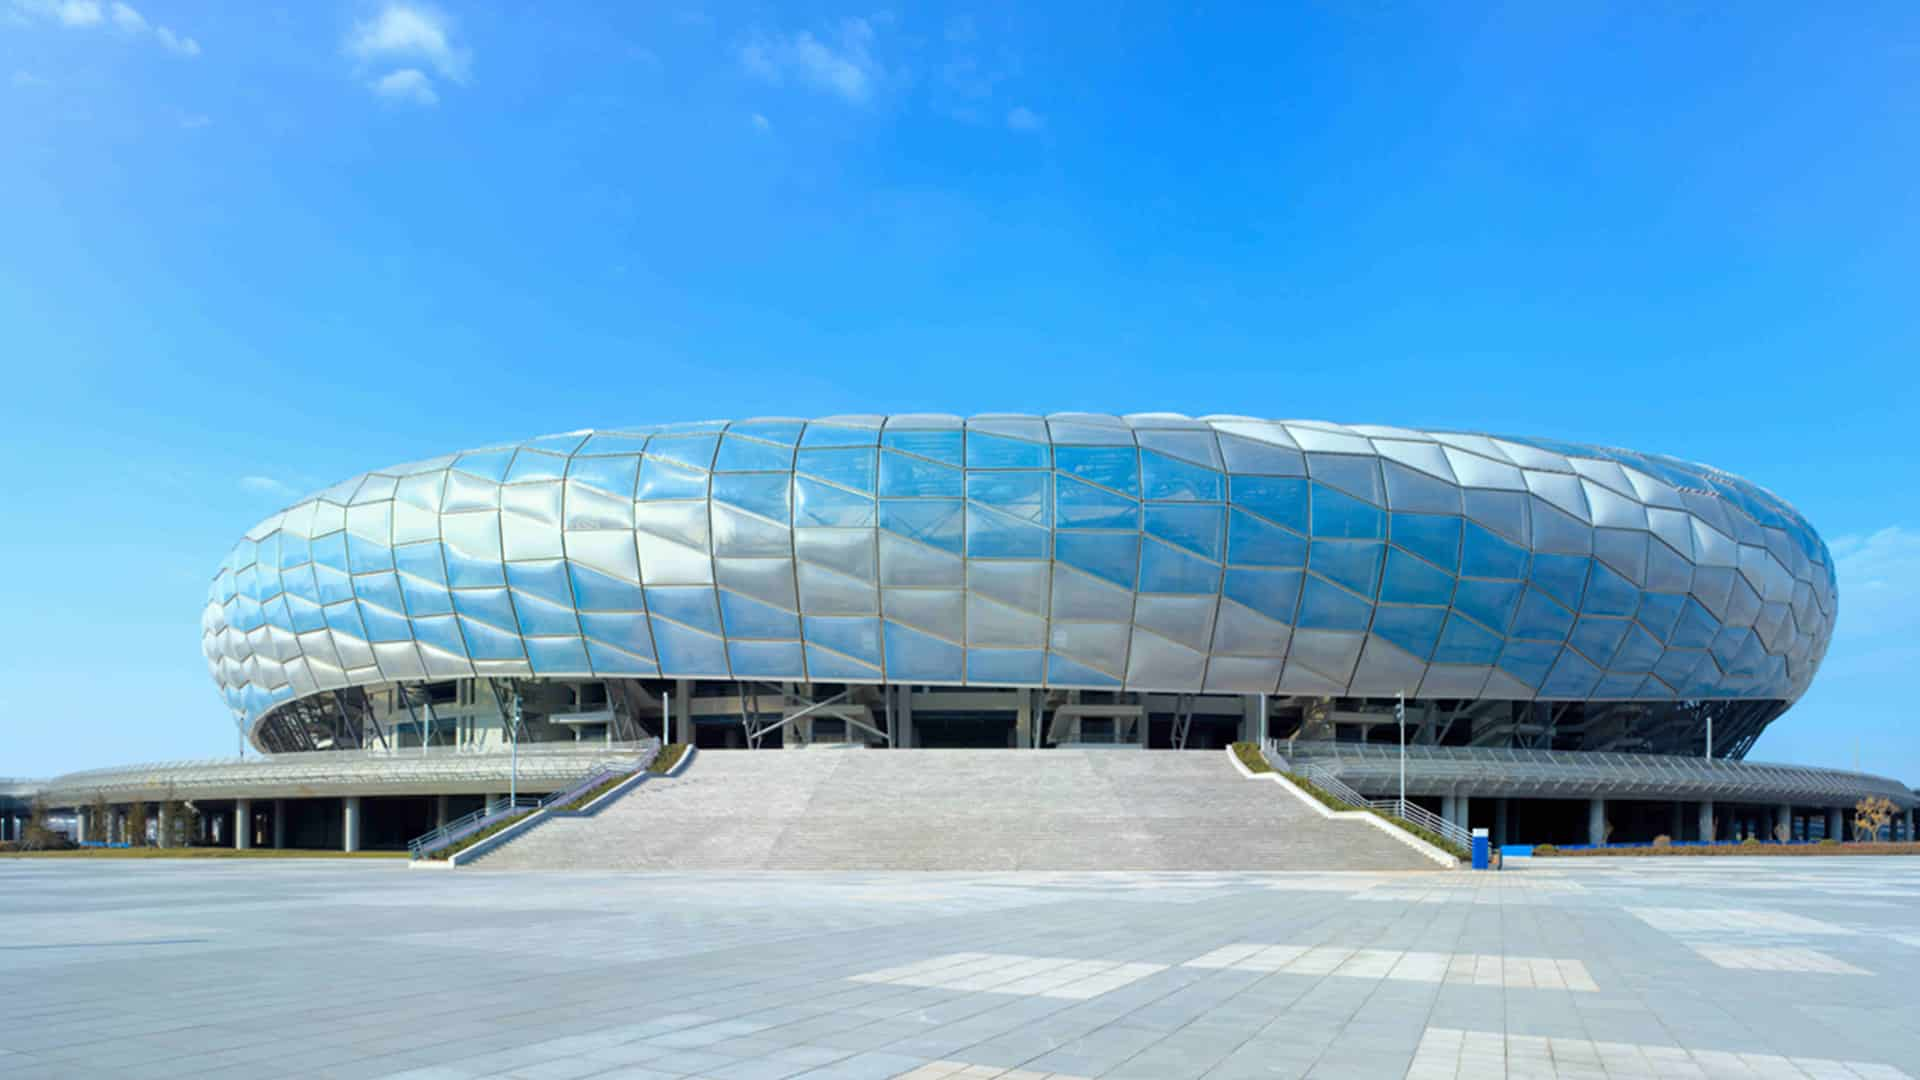 Architectural Design&Research of HIT and Nadel&Hwa Associates selected Texlon® ETFE as the cladding for this complex elliptic form of DaLian stadium.